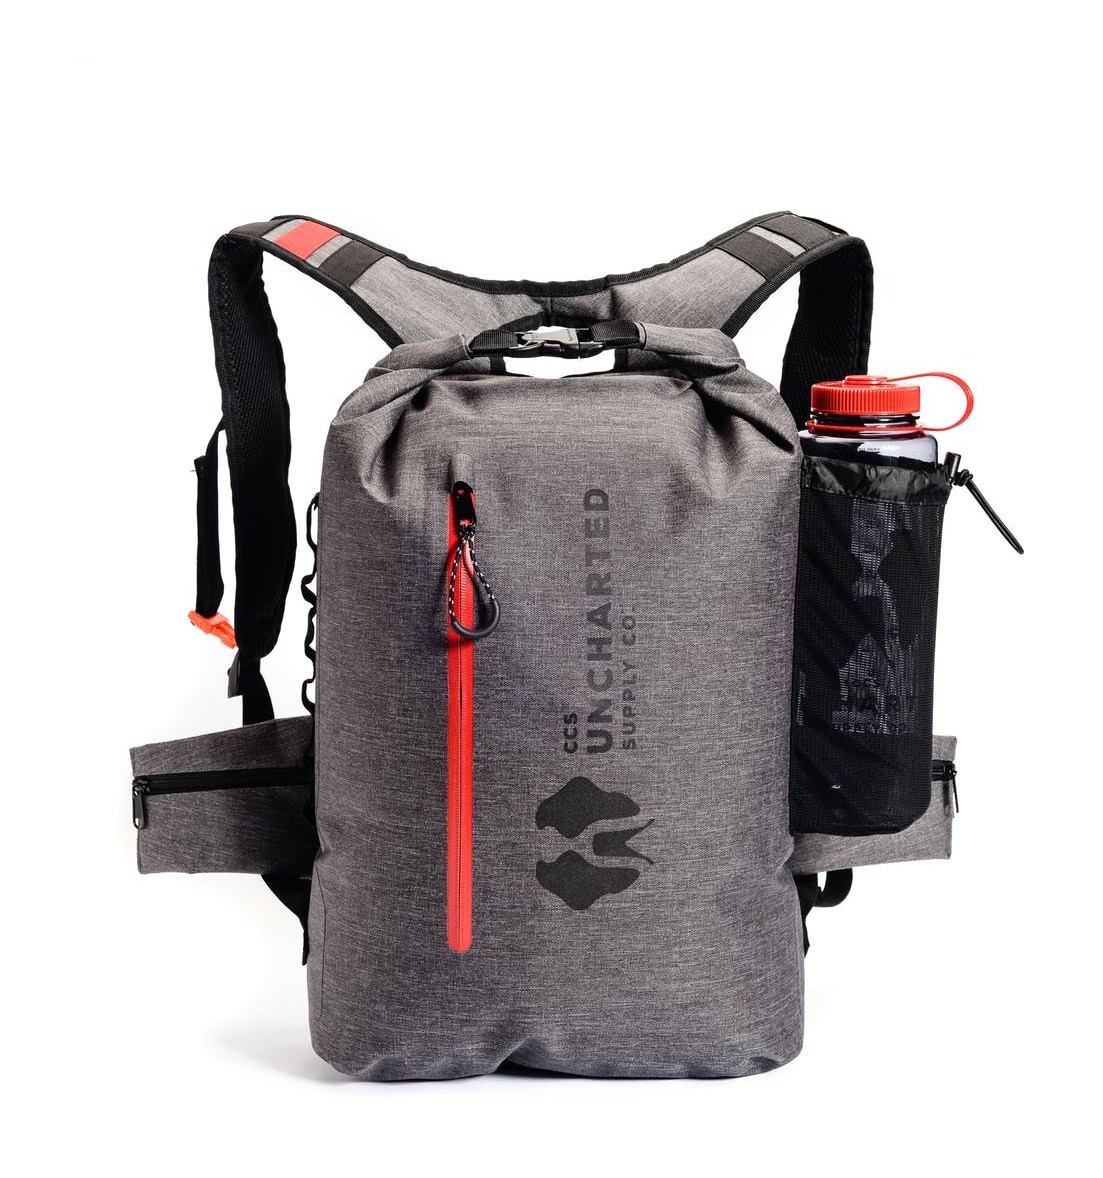 Uncharted Supply Co. Seventy2 Survival System